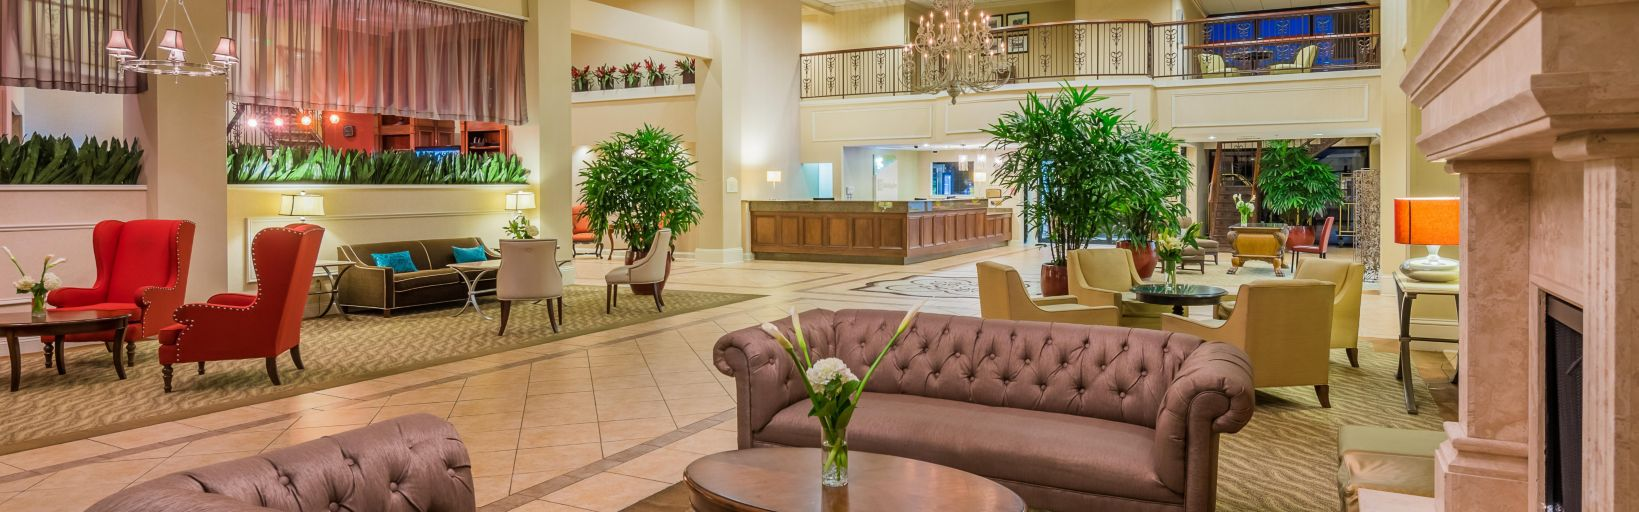 Holiday Inn Mobile-Dwtn/Hist. District Hotel by IHG